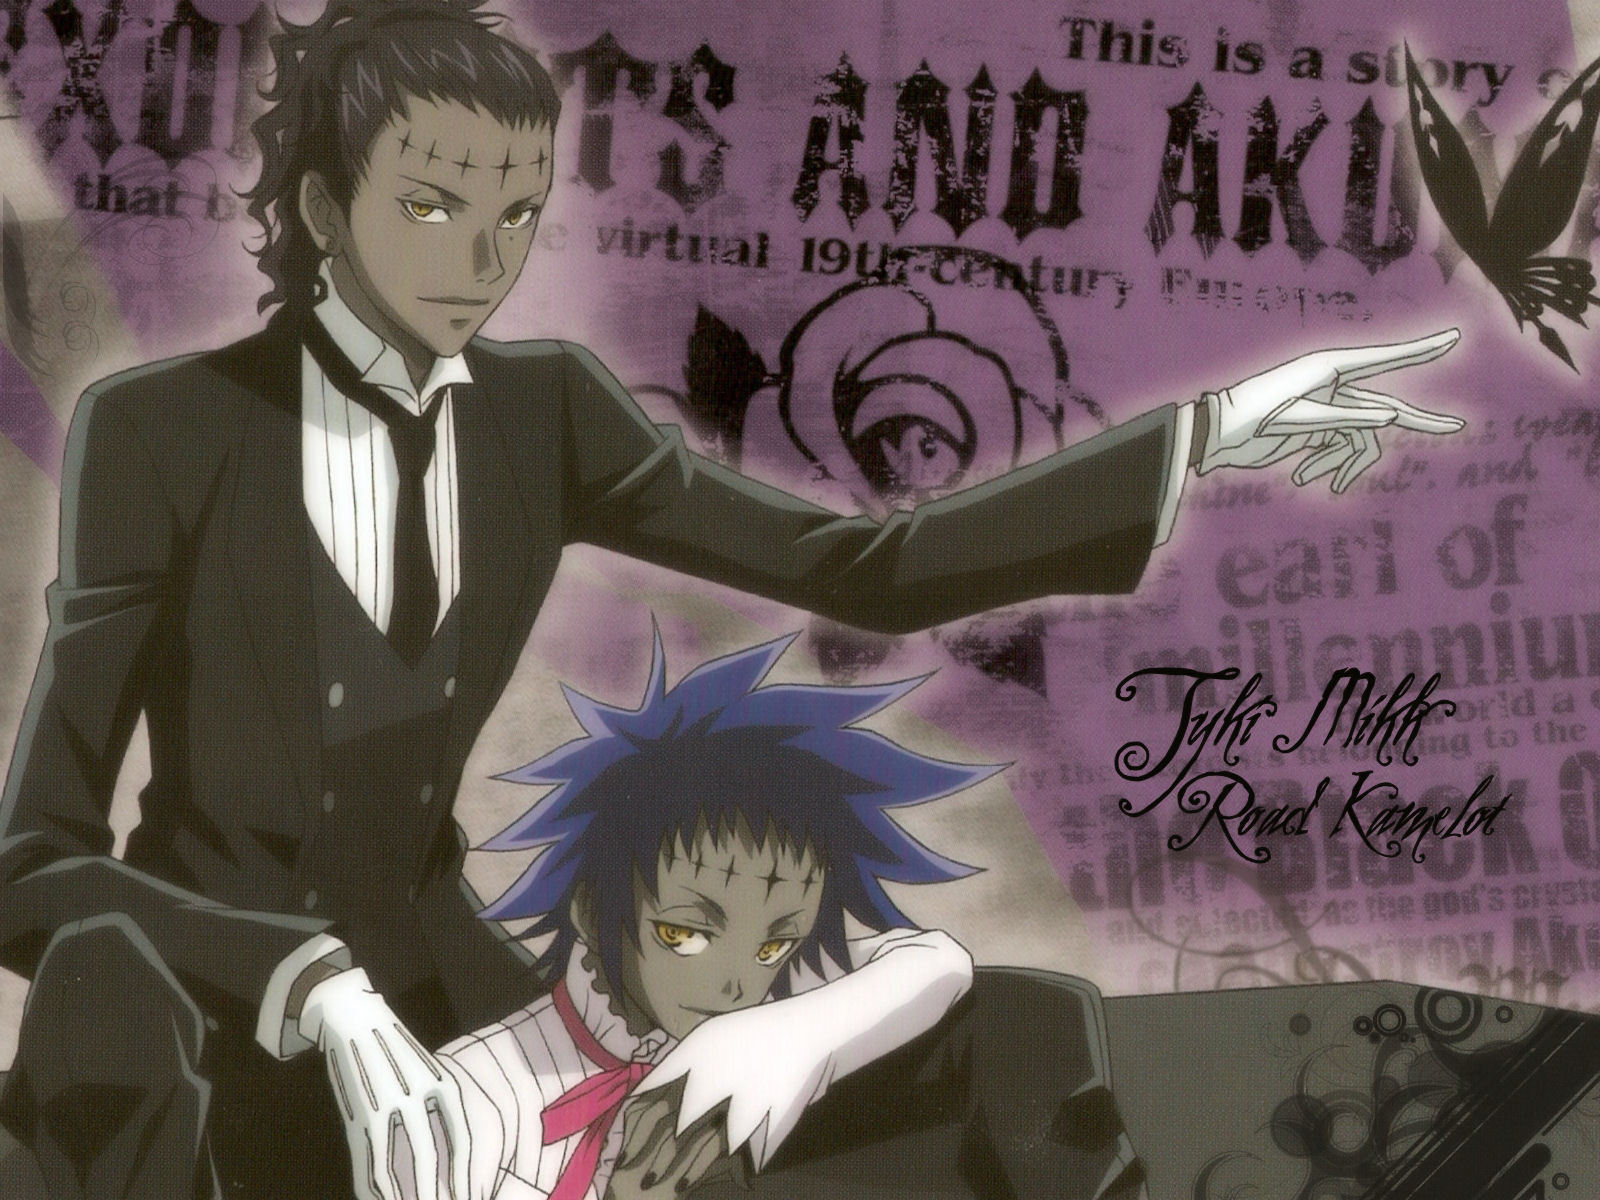 http://images2.fanpop.com/image/photos/12300000/Tyki-Road-Noah-s-dgray-man-12319355-1600-1200.jpg